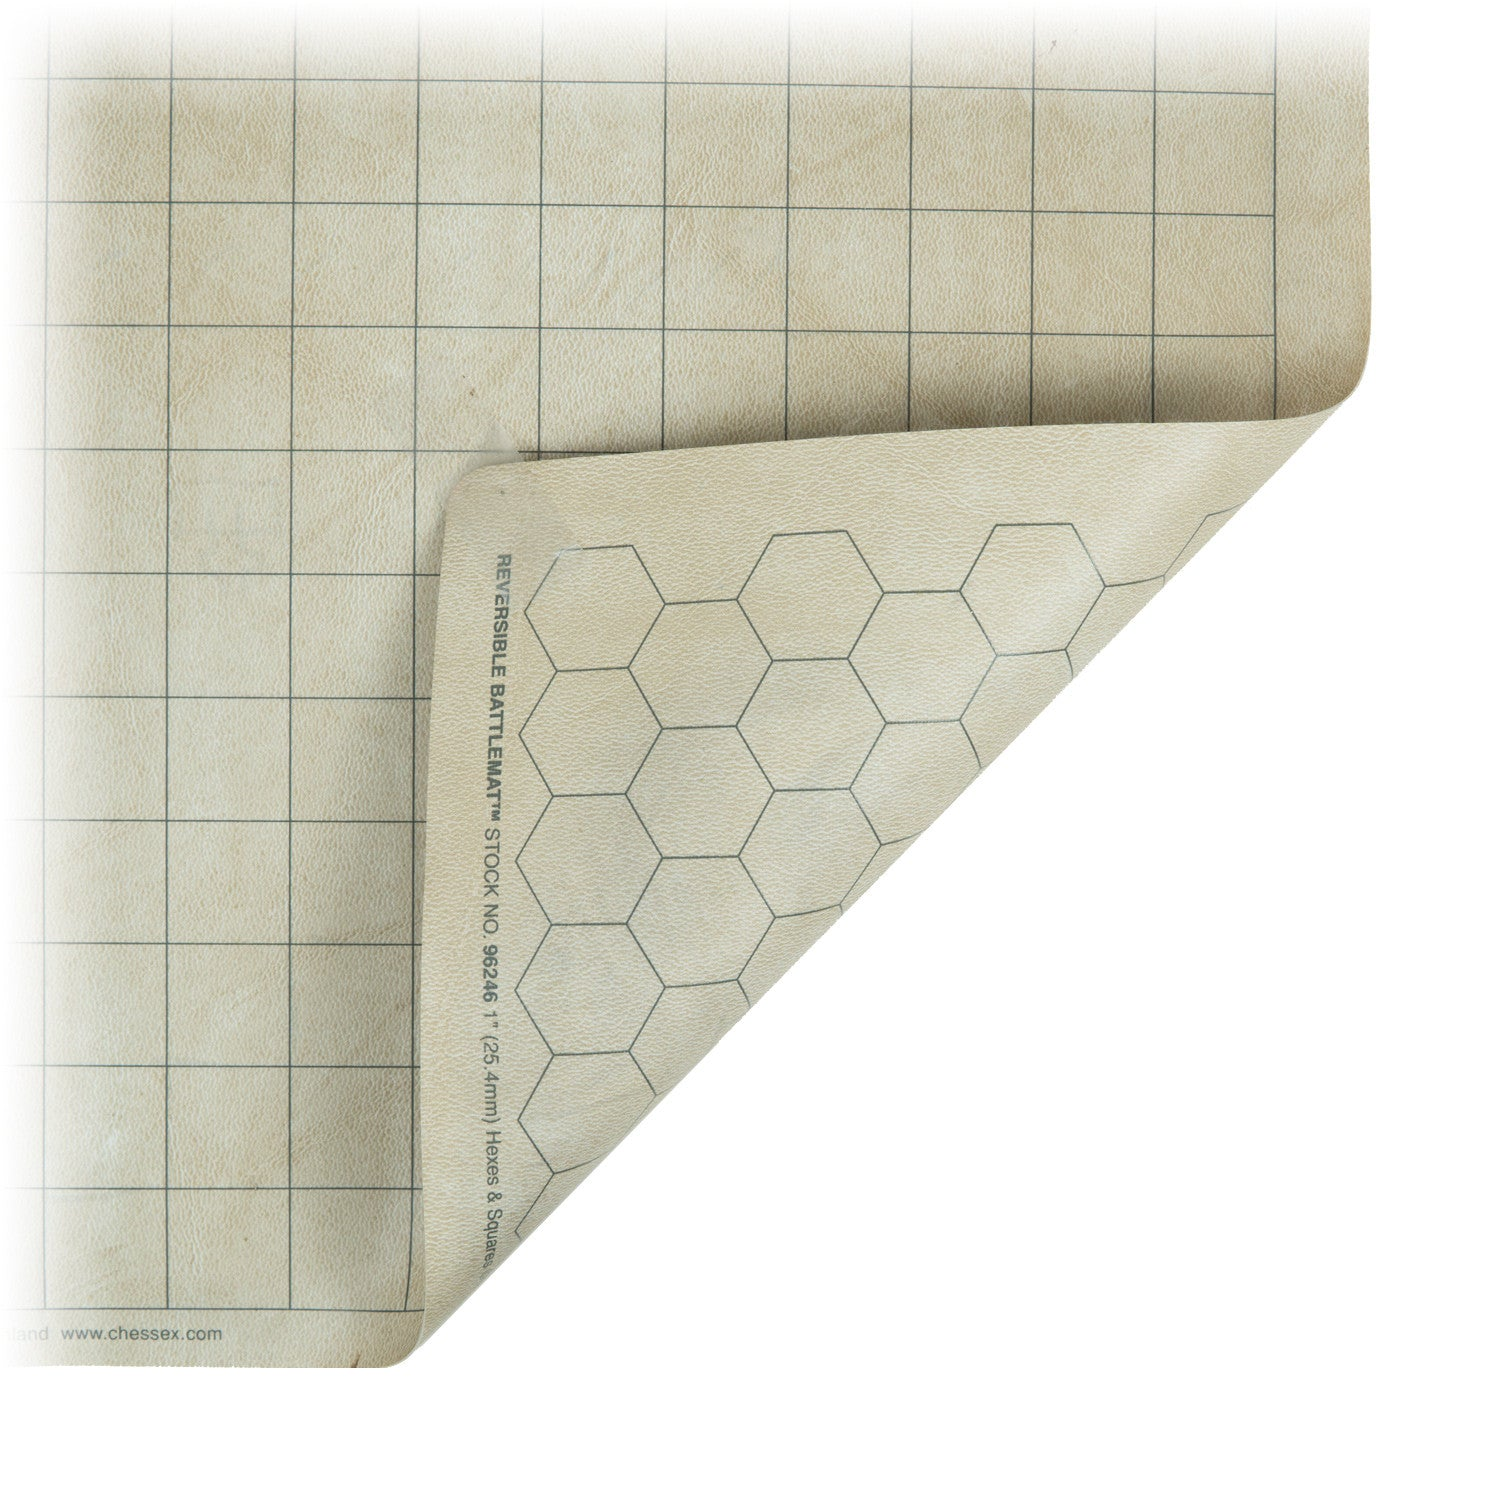 "Chessex Reversible Battlemat 1.5"" square/hex"